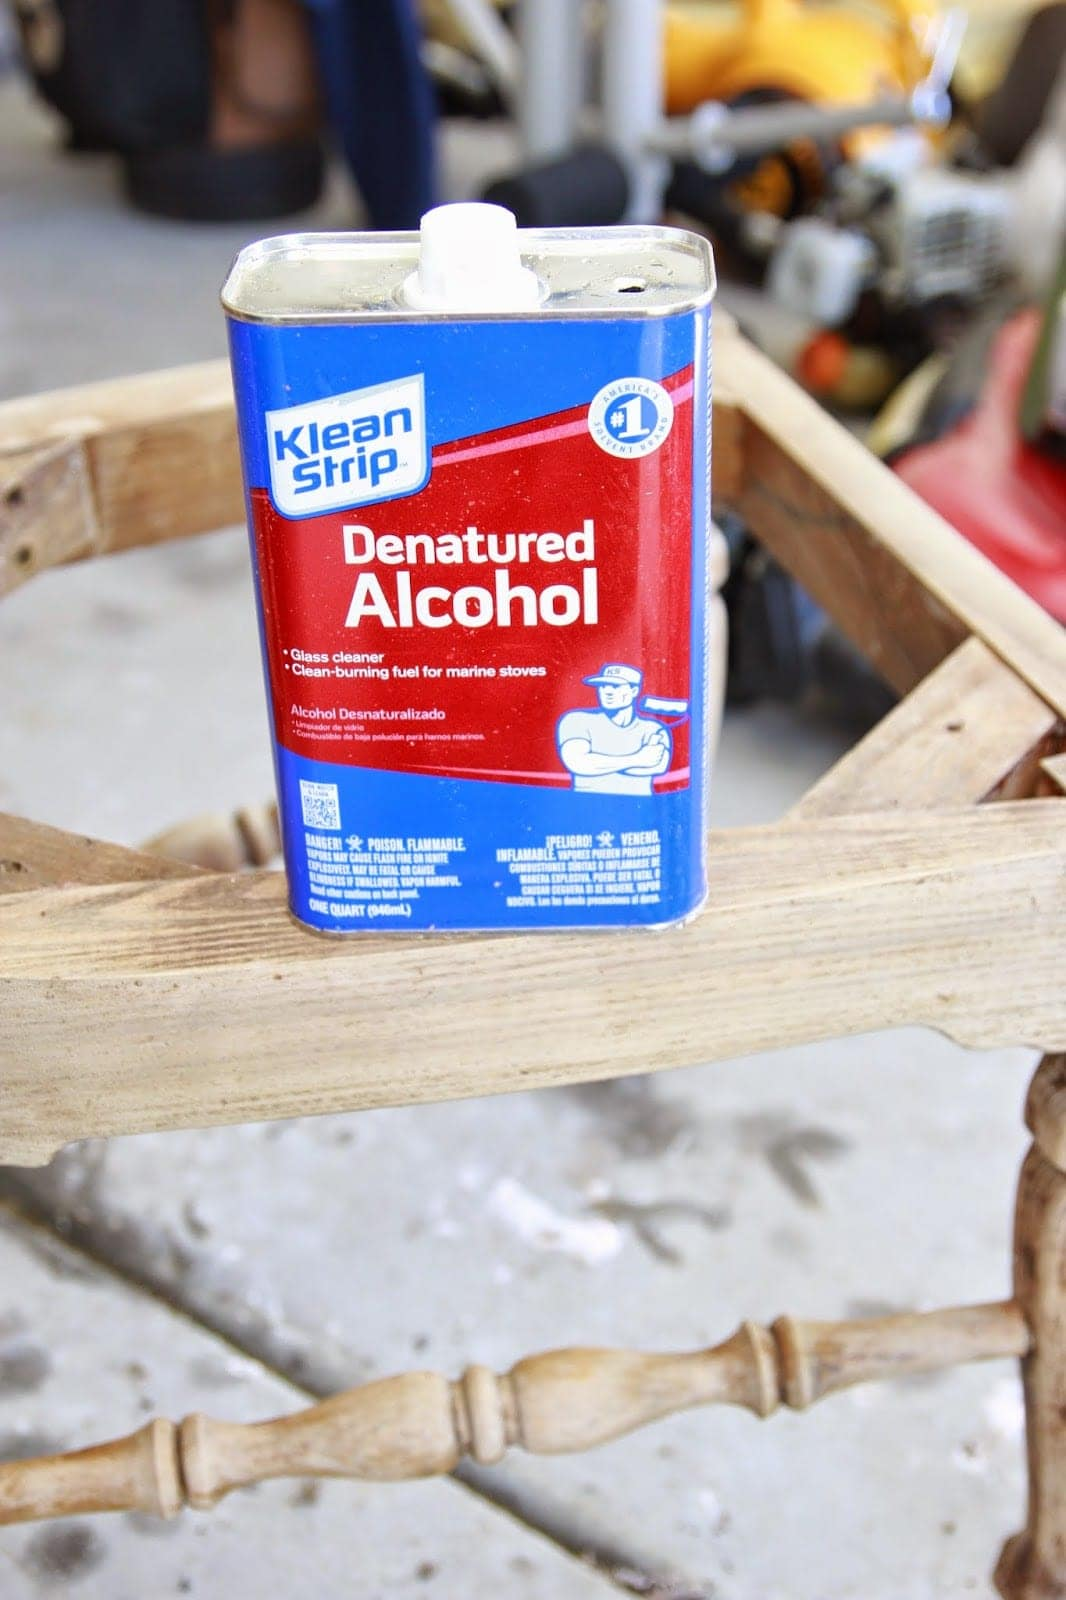 This Klean Strip denatured alcohol saved my project! It makes the stripping process SO much easier!